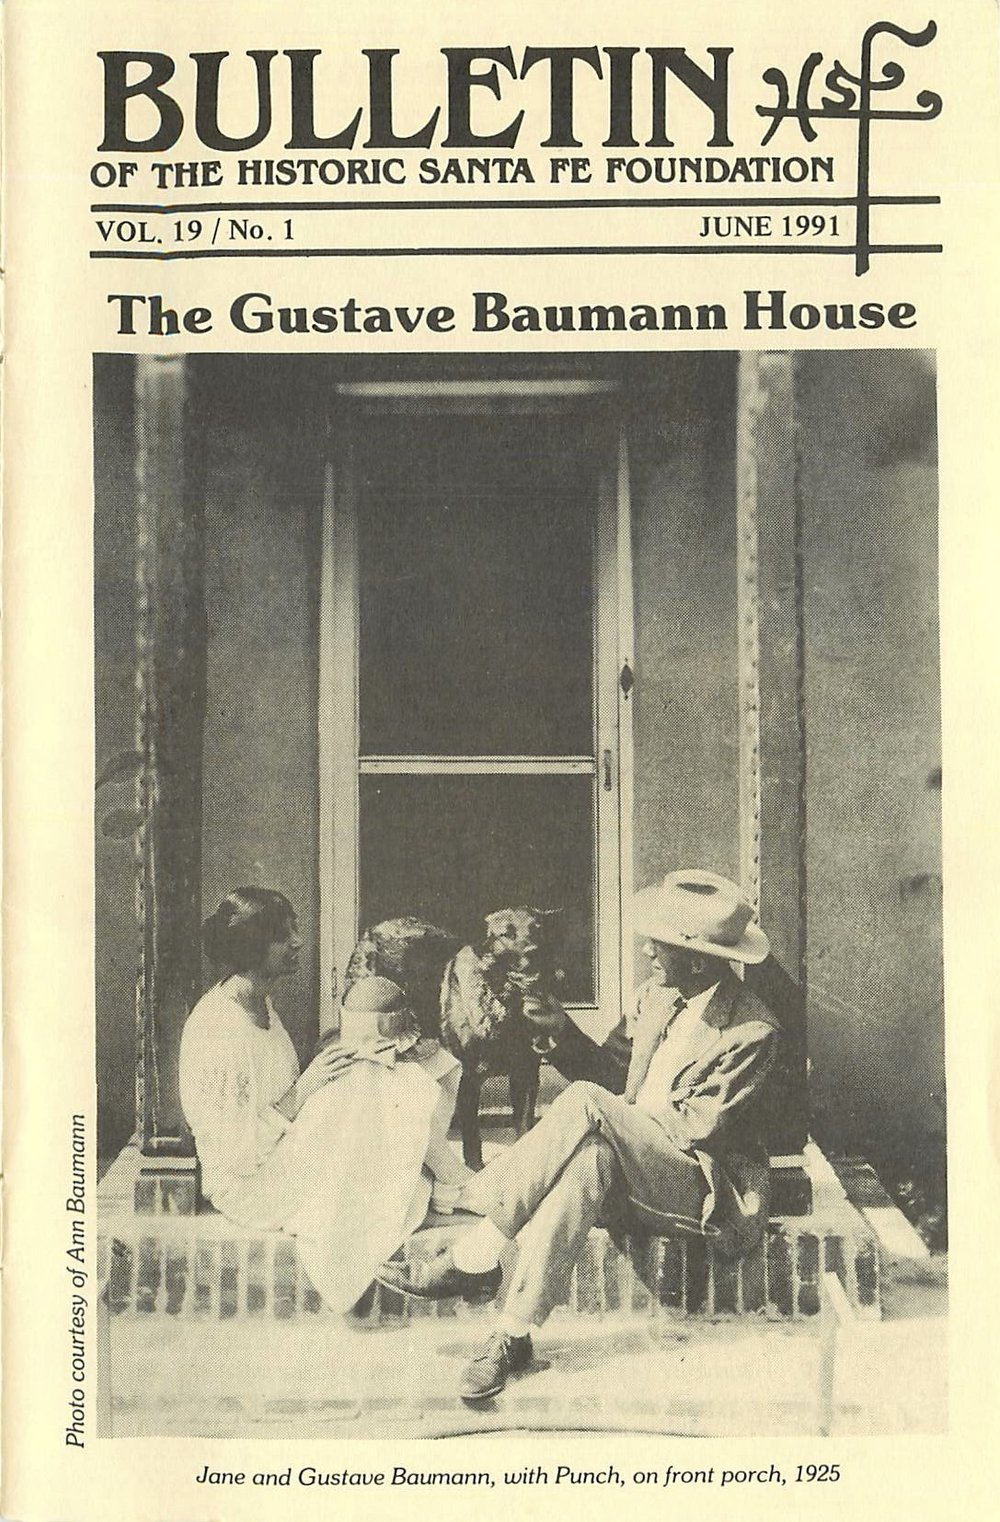 1991 HSFF Bulletin Vol.19 No.1 Cover